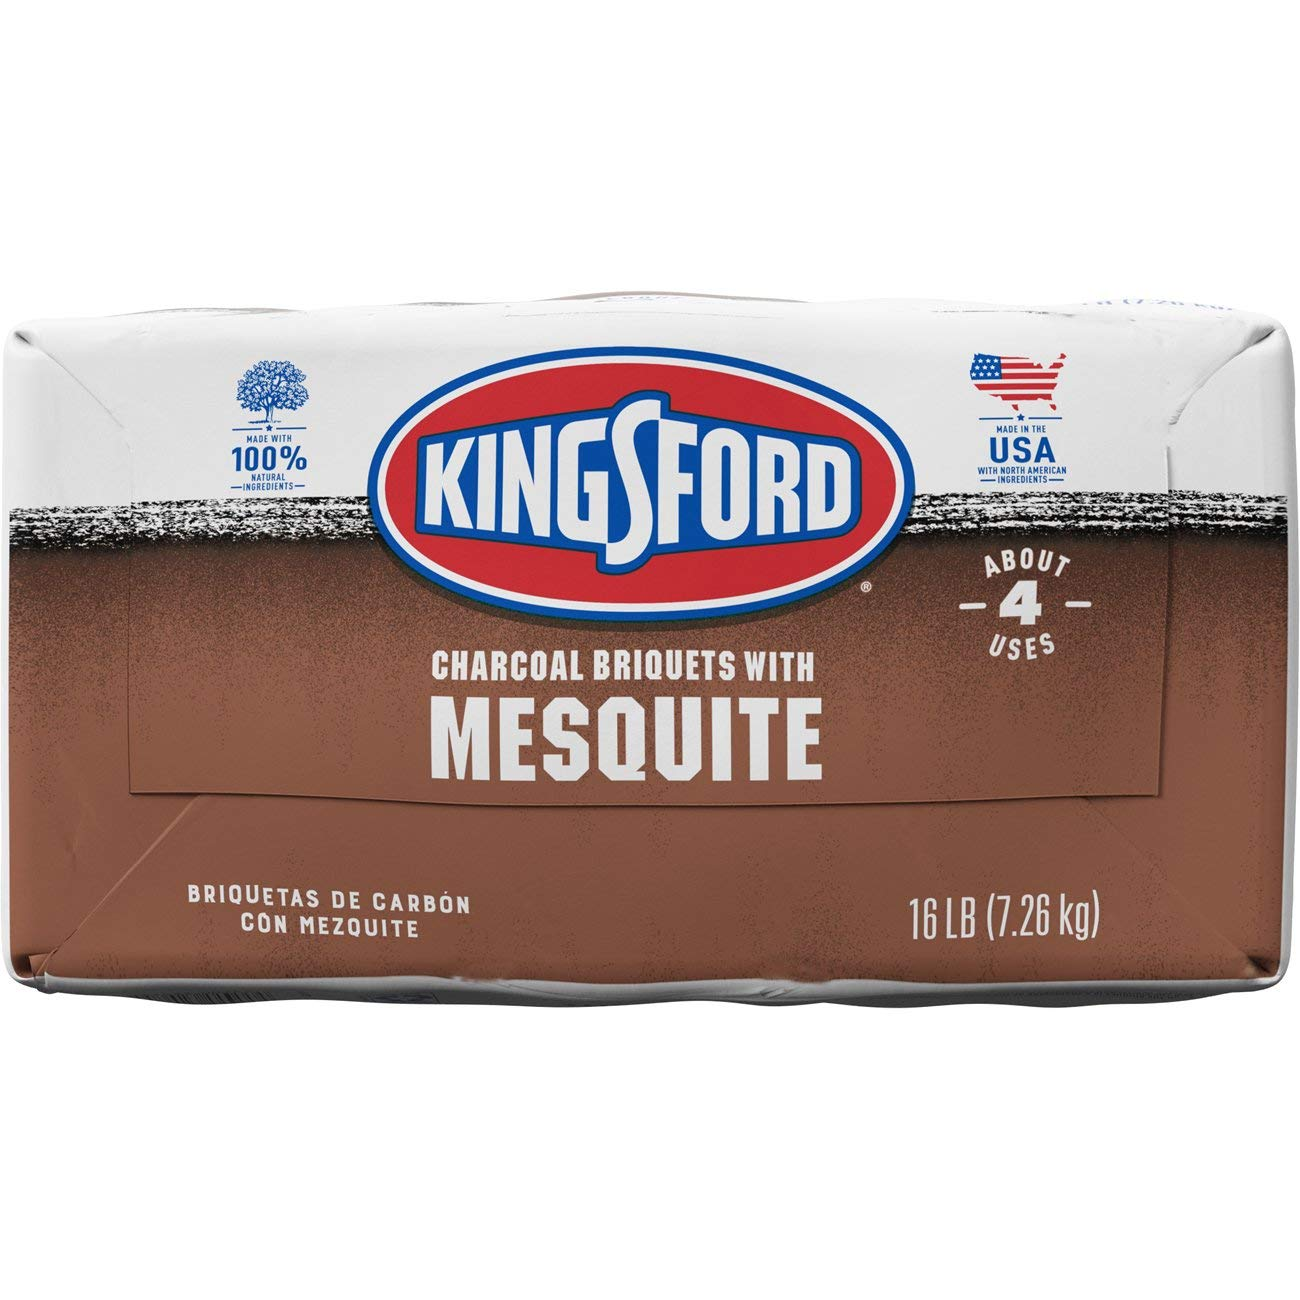 Kingsford Original Charcoal Briquettes with Mesquite 16 Pounds BBQ Charcoal for Grilling